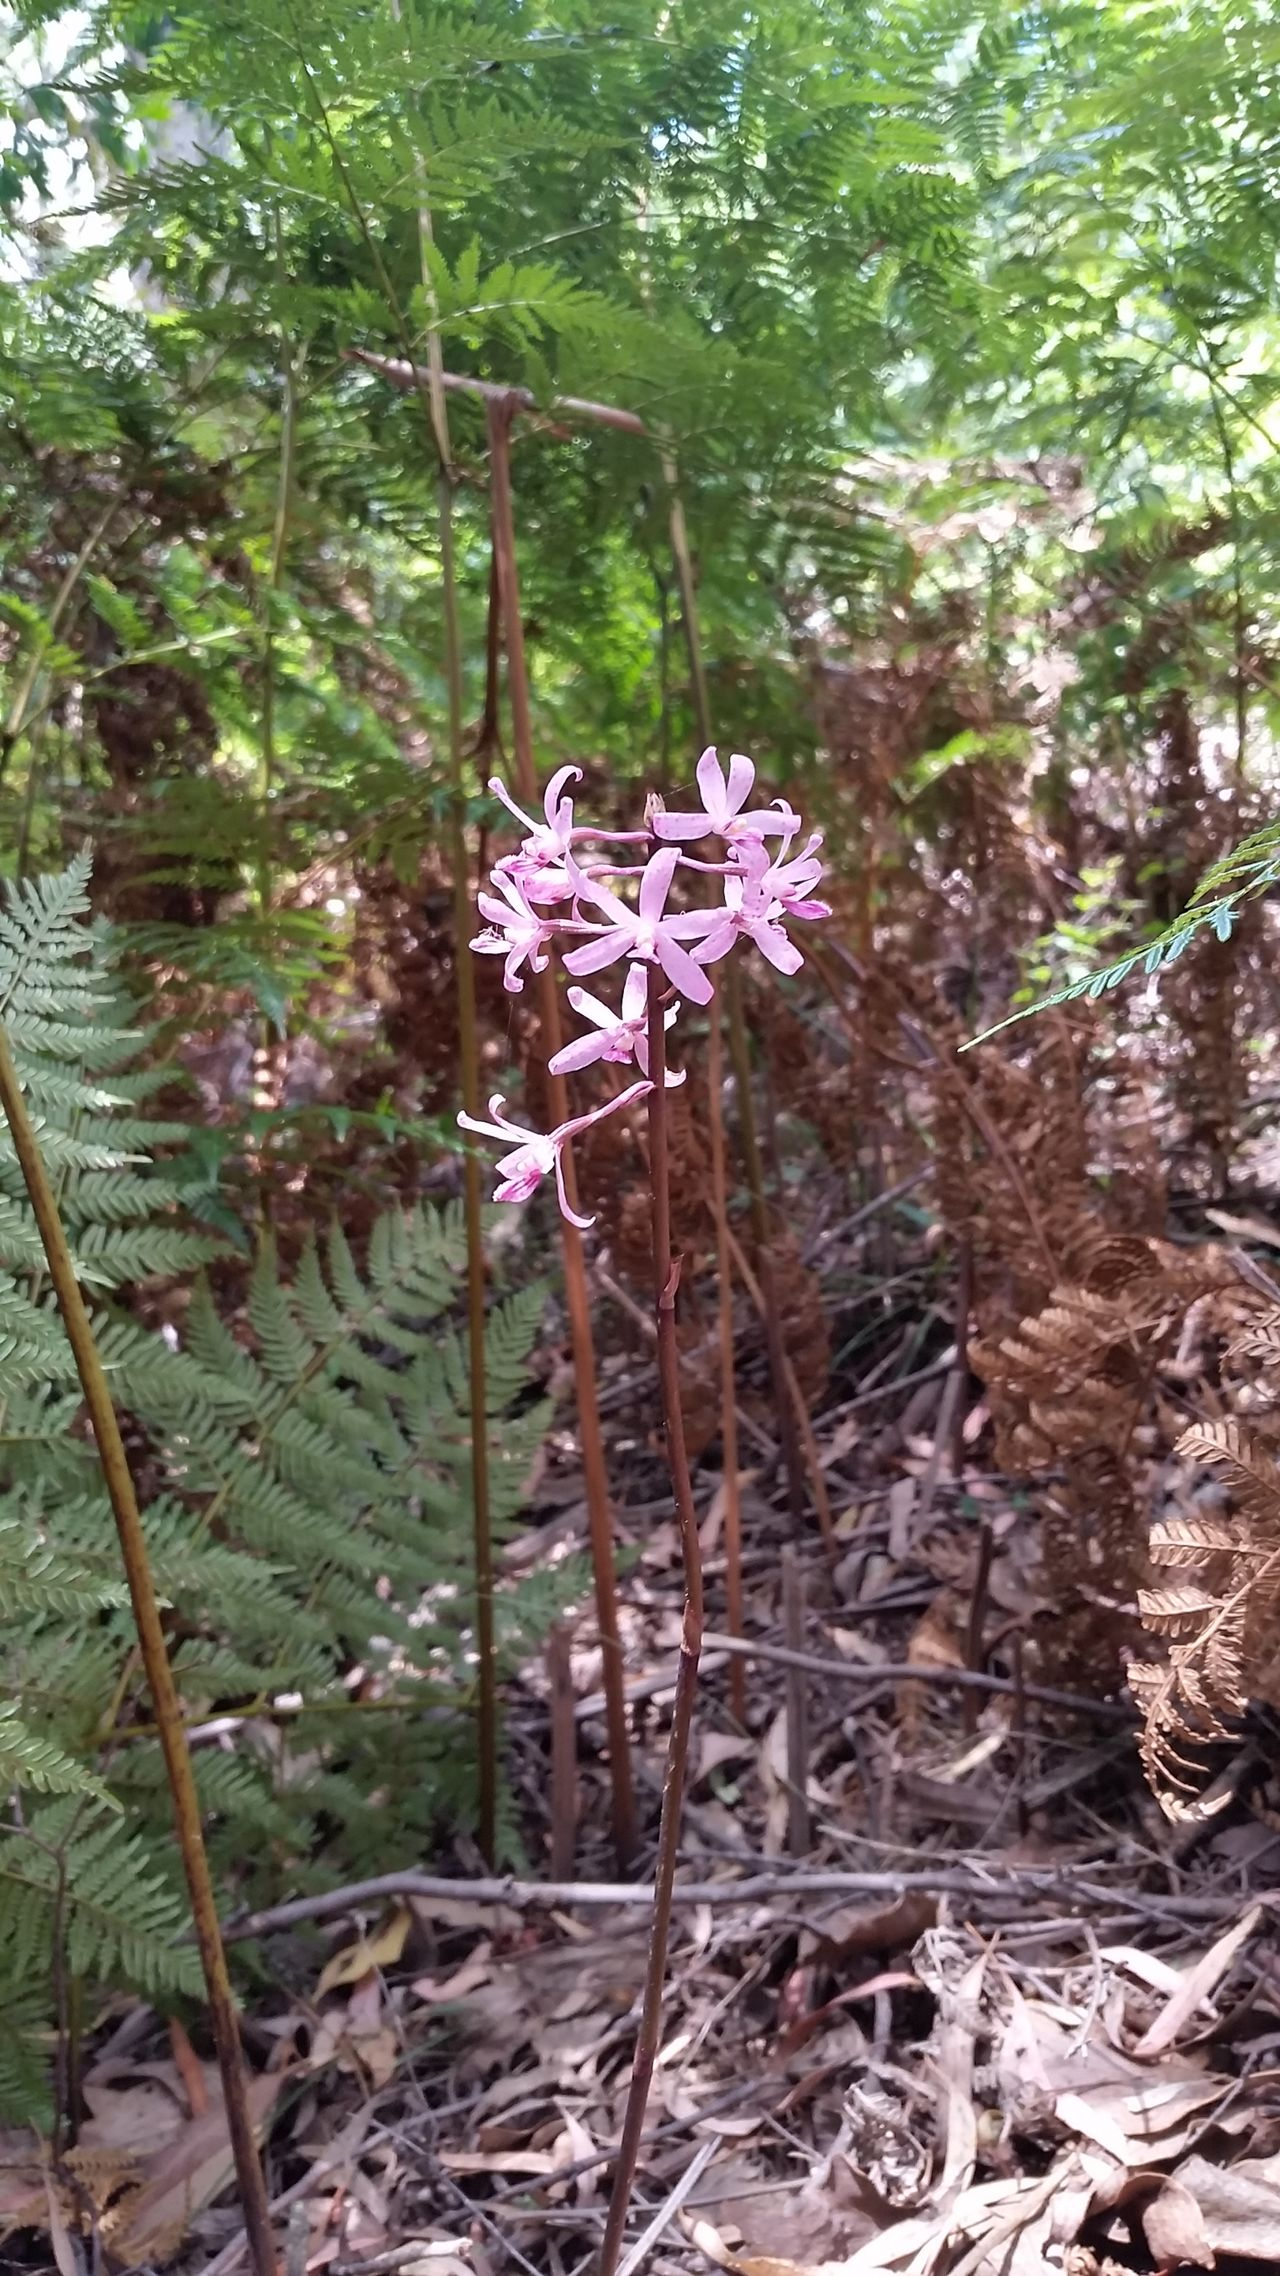 Nature Forest Tree No People Growth Outdoors Beauty In Nature Plant Day Australian Landscape Mountain Nature Hiking Australian Bush Hikingadventures Fern Pinkflowers